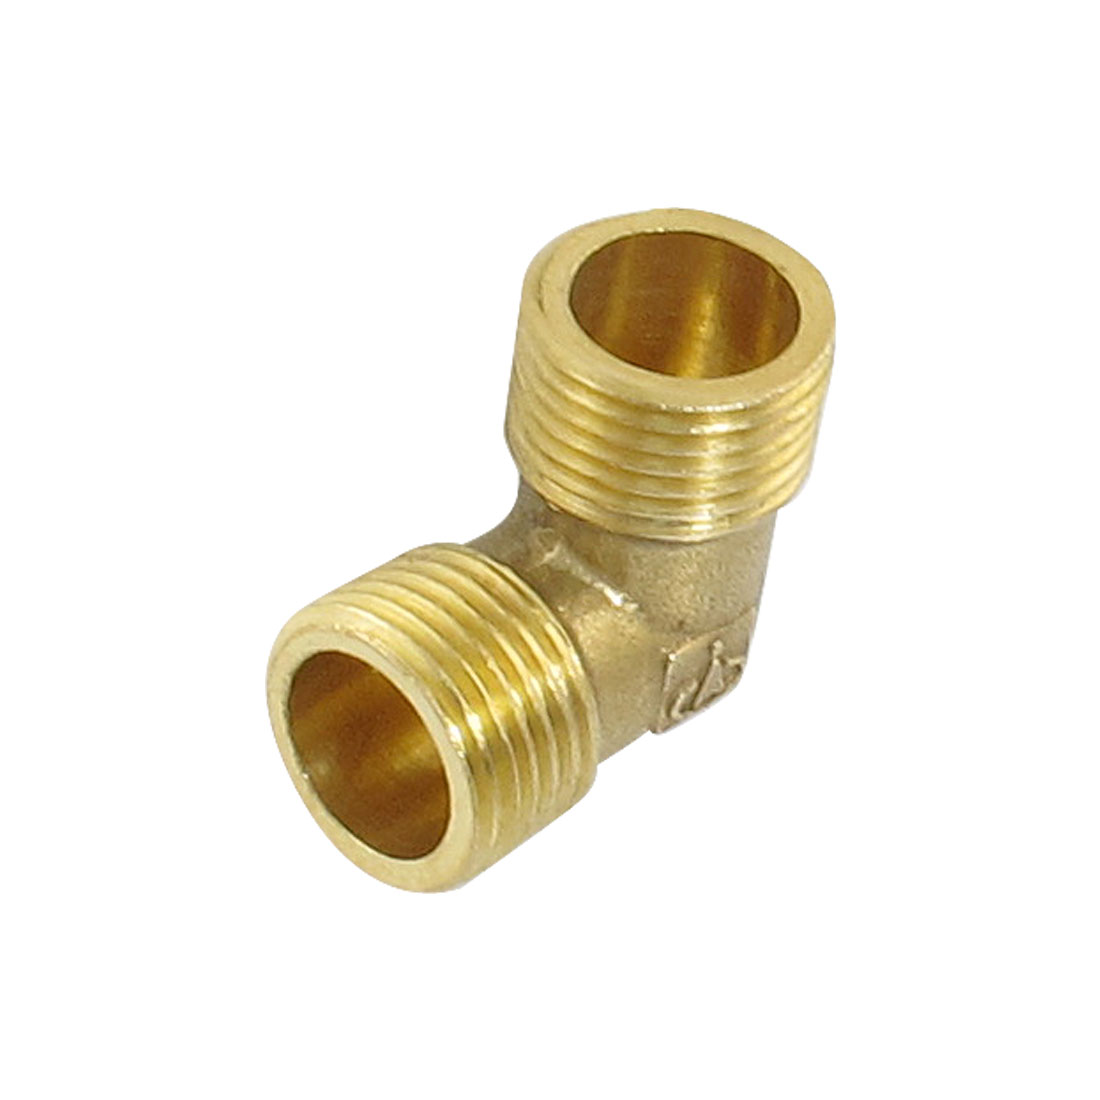 "Air Pipe Brass 3/8"" PT to 3/8"" PT Male Thread 90 Degree Elbow Coupler"